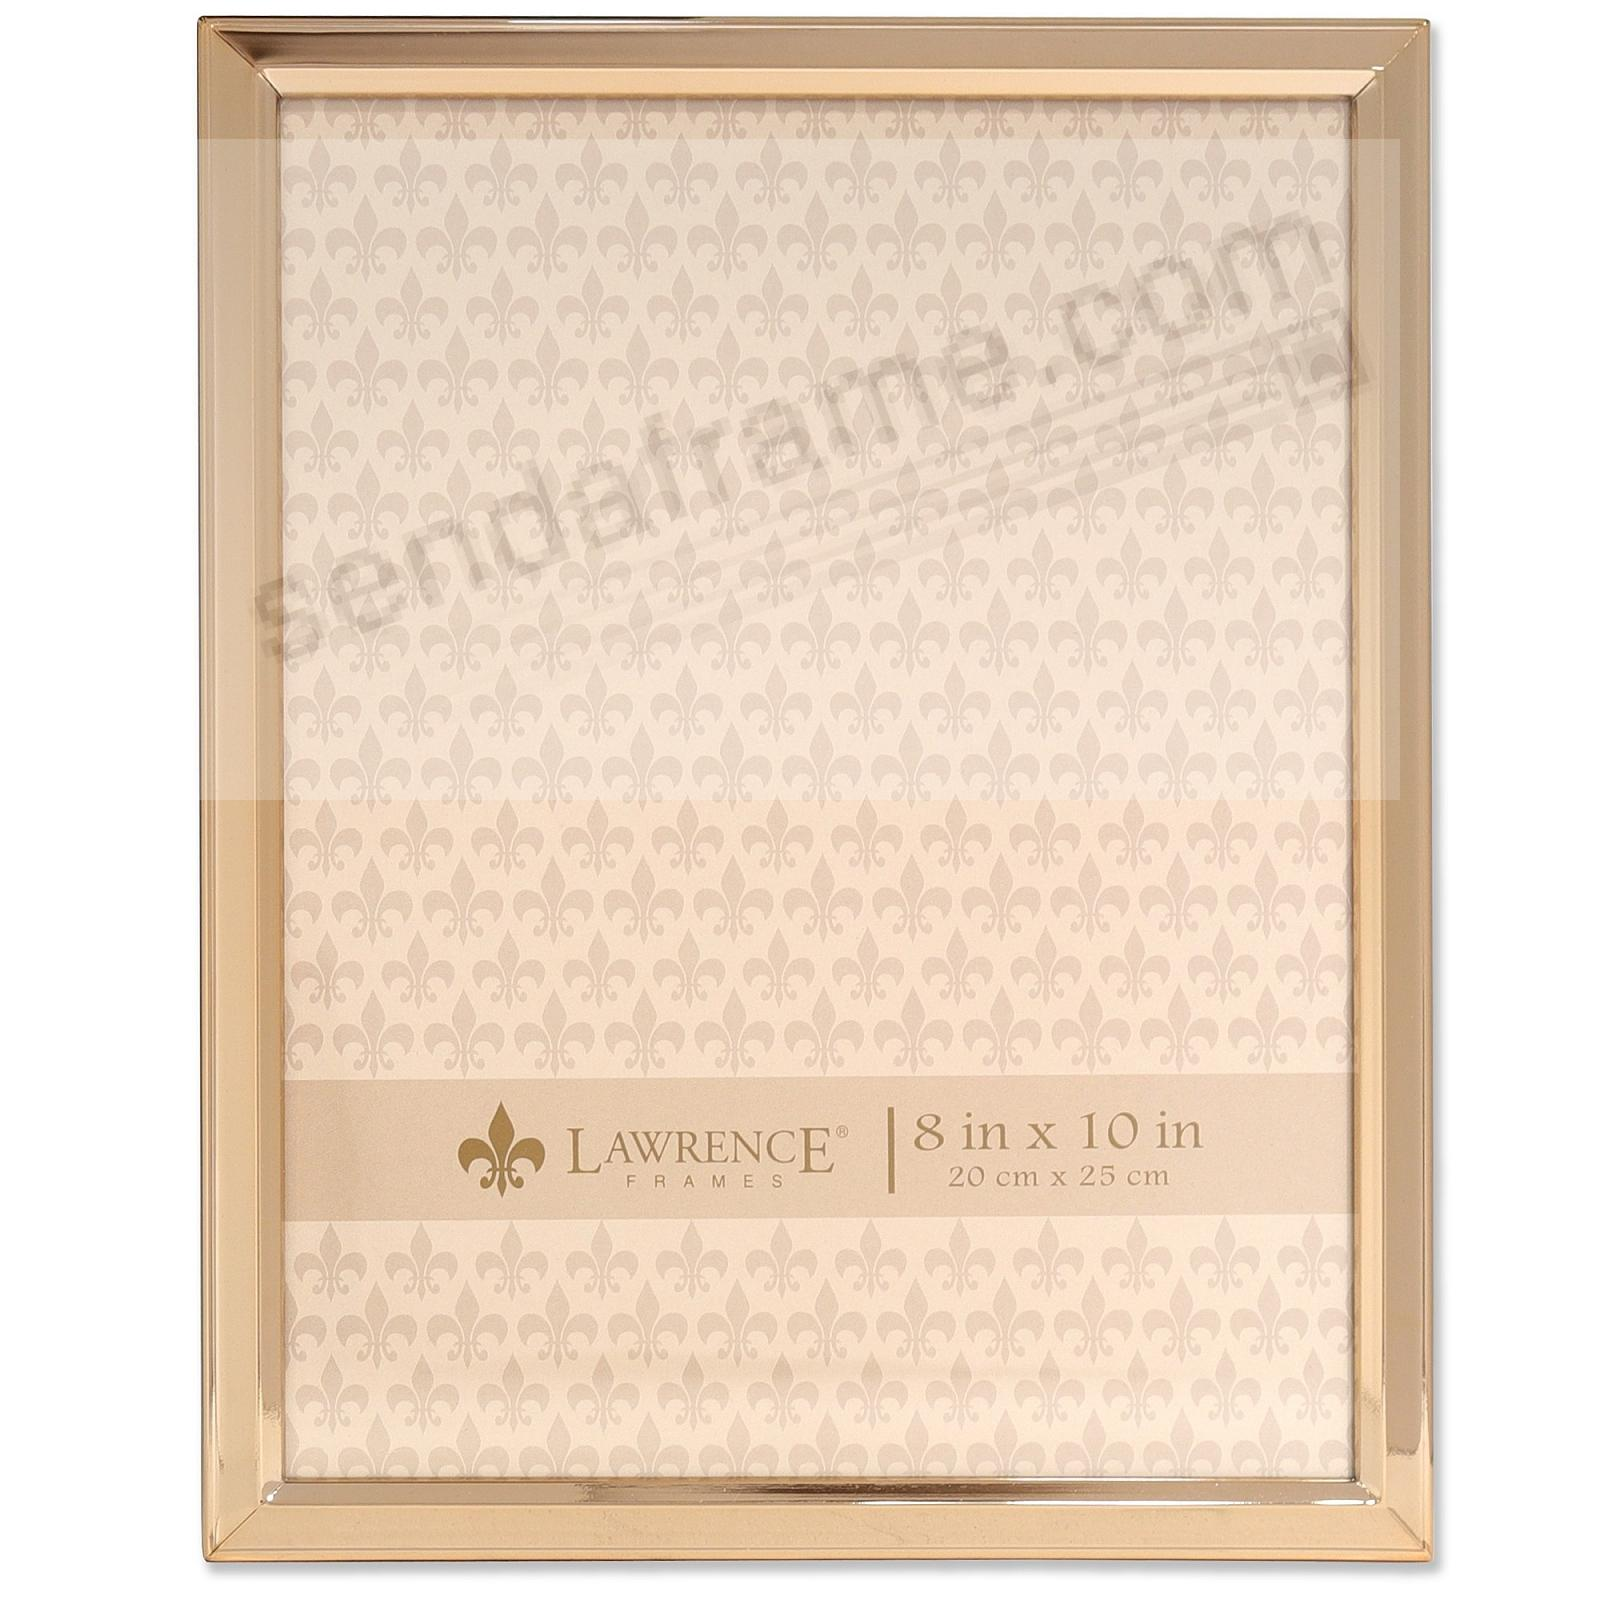 Bevelled Border Gold finish 8x10 frame by Lawrence®